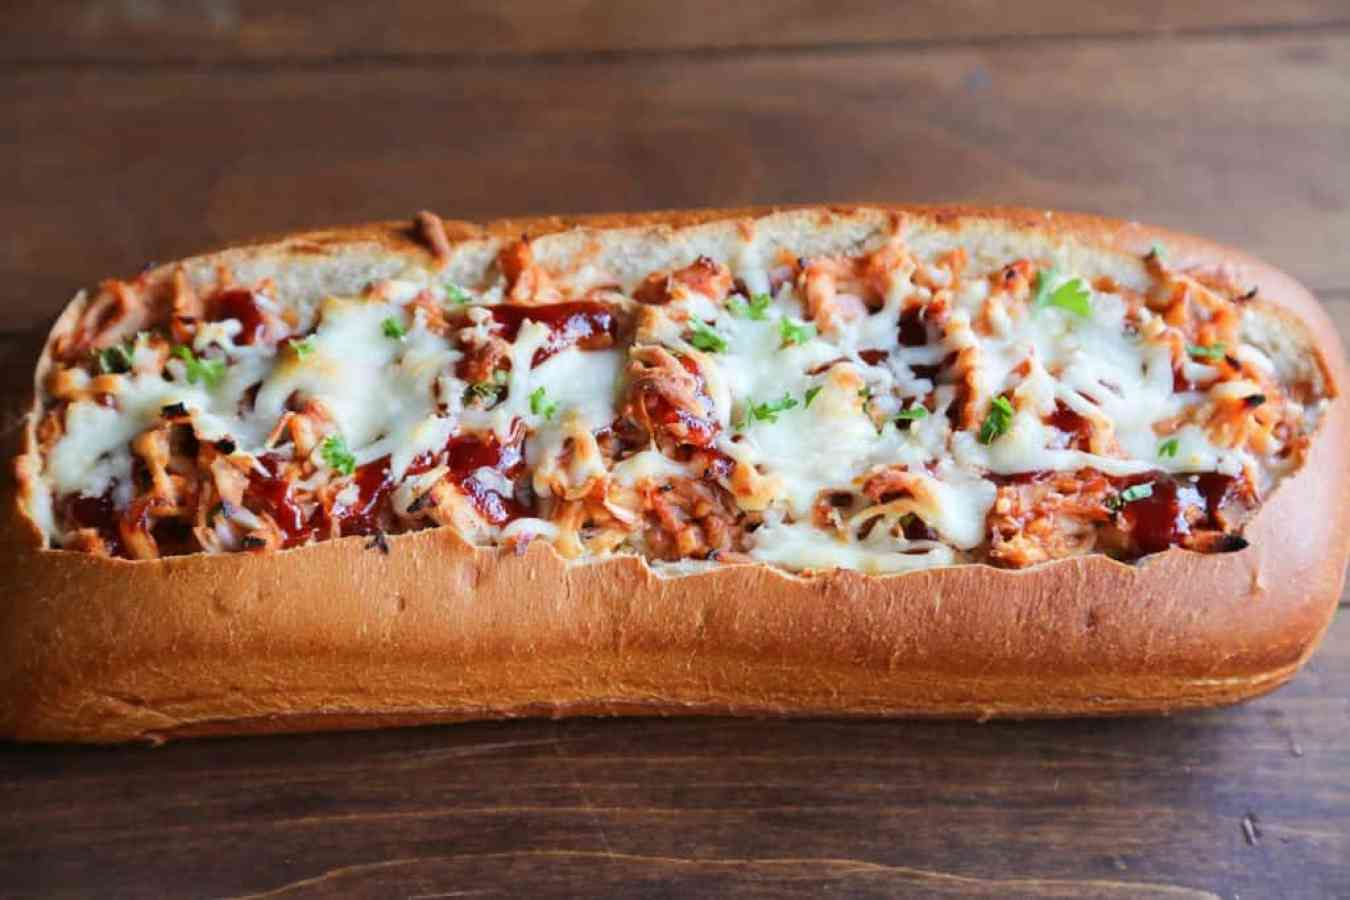 BBQ Chicken Stuffed Bread – Crusty artisan bread filled with cheesy bbq chicken filling. A fun twist to traditional BBQ chicken pizza–perfect for game day appetizers or an easy dinner idea. | Tastes Better From Scratch